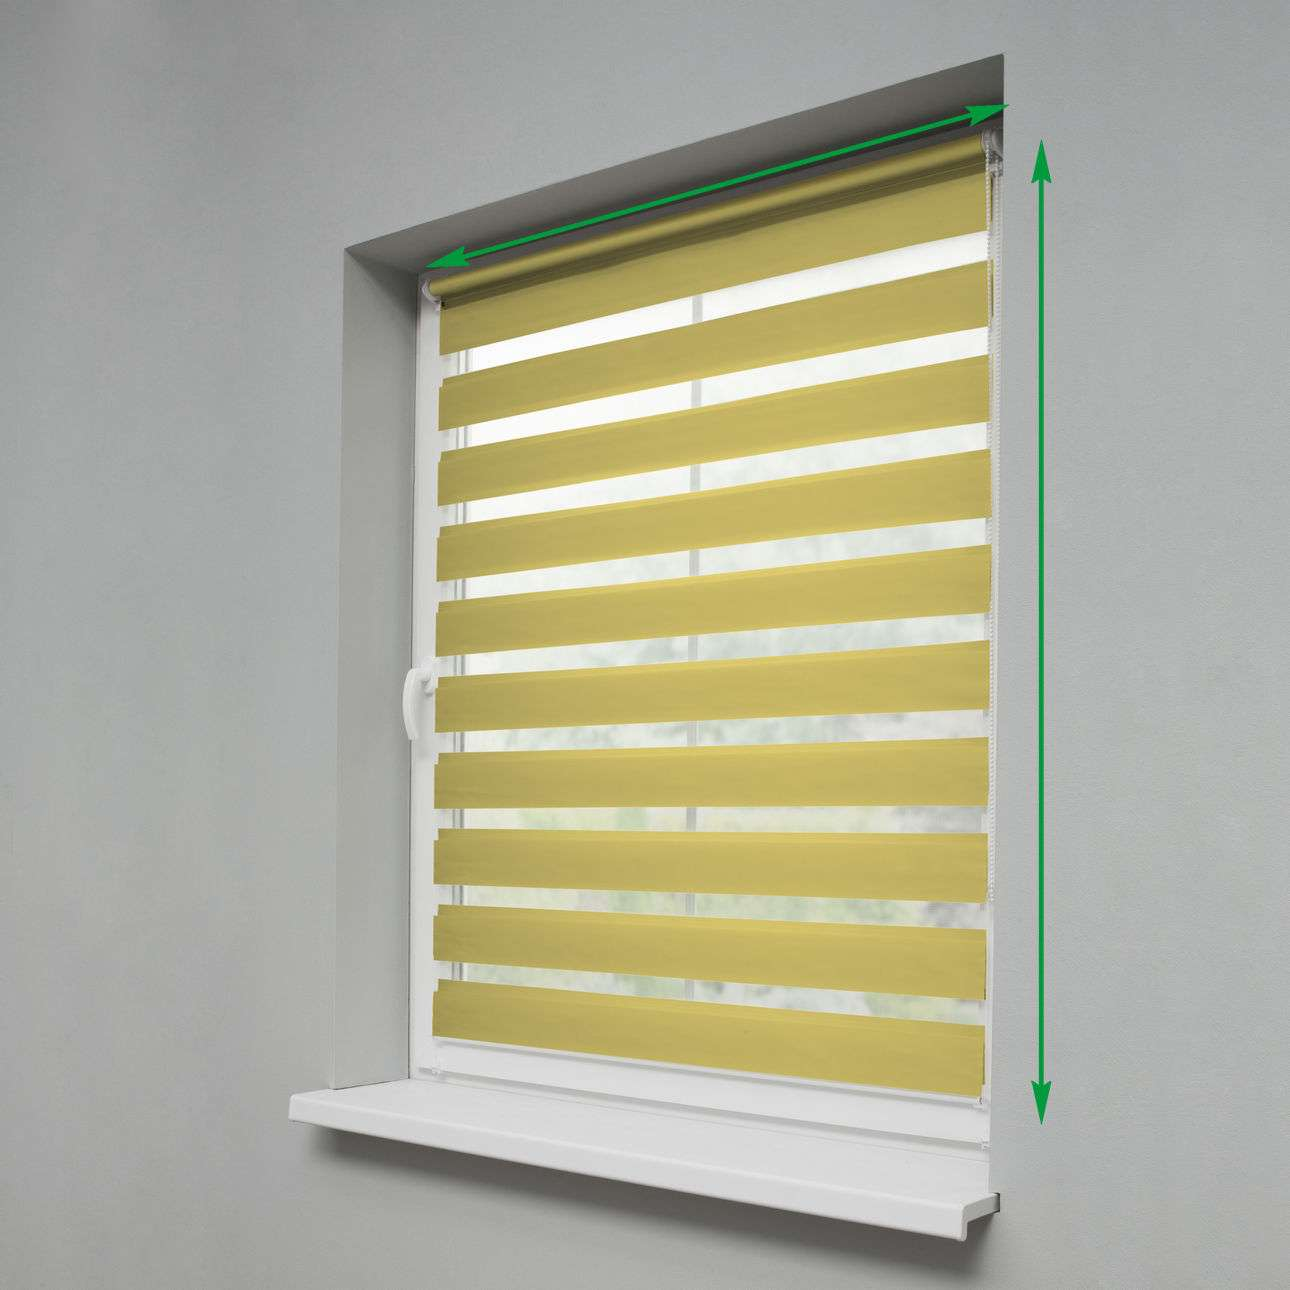 Mini Day & Night Venetian roller blind (compact design for fitting inside window recess) in collection Roller blinds Day & Night (Venetian blind), fabric: 1206